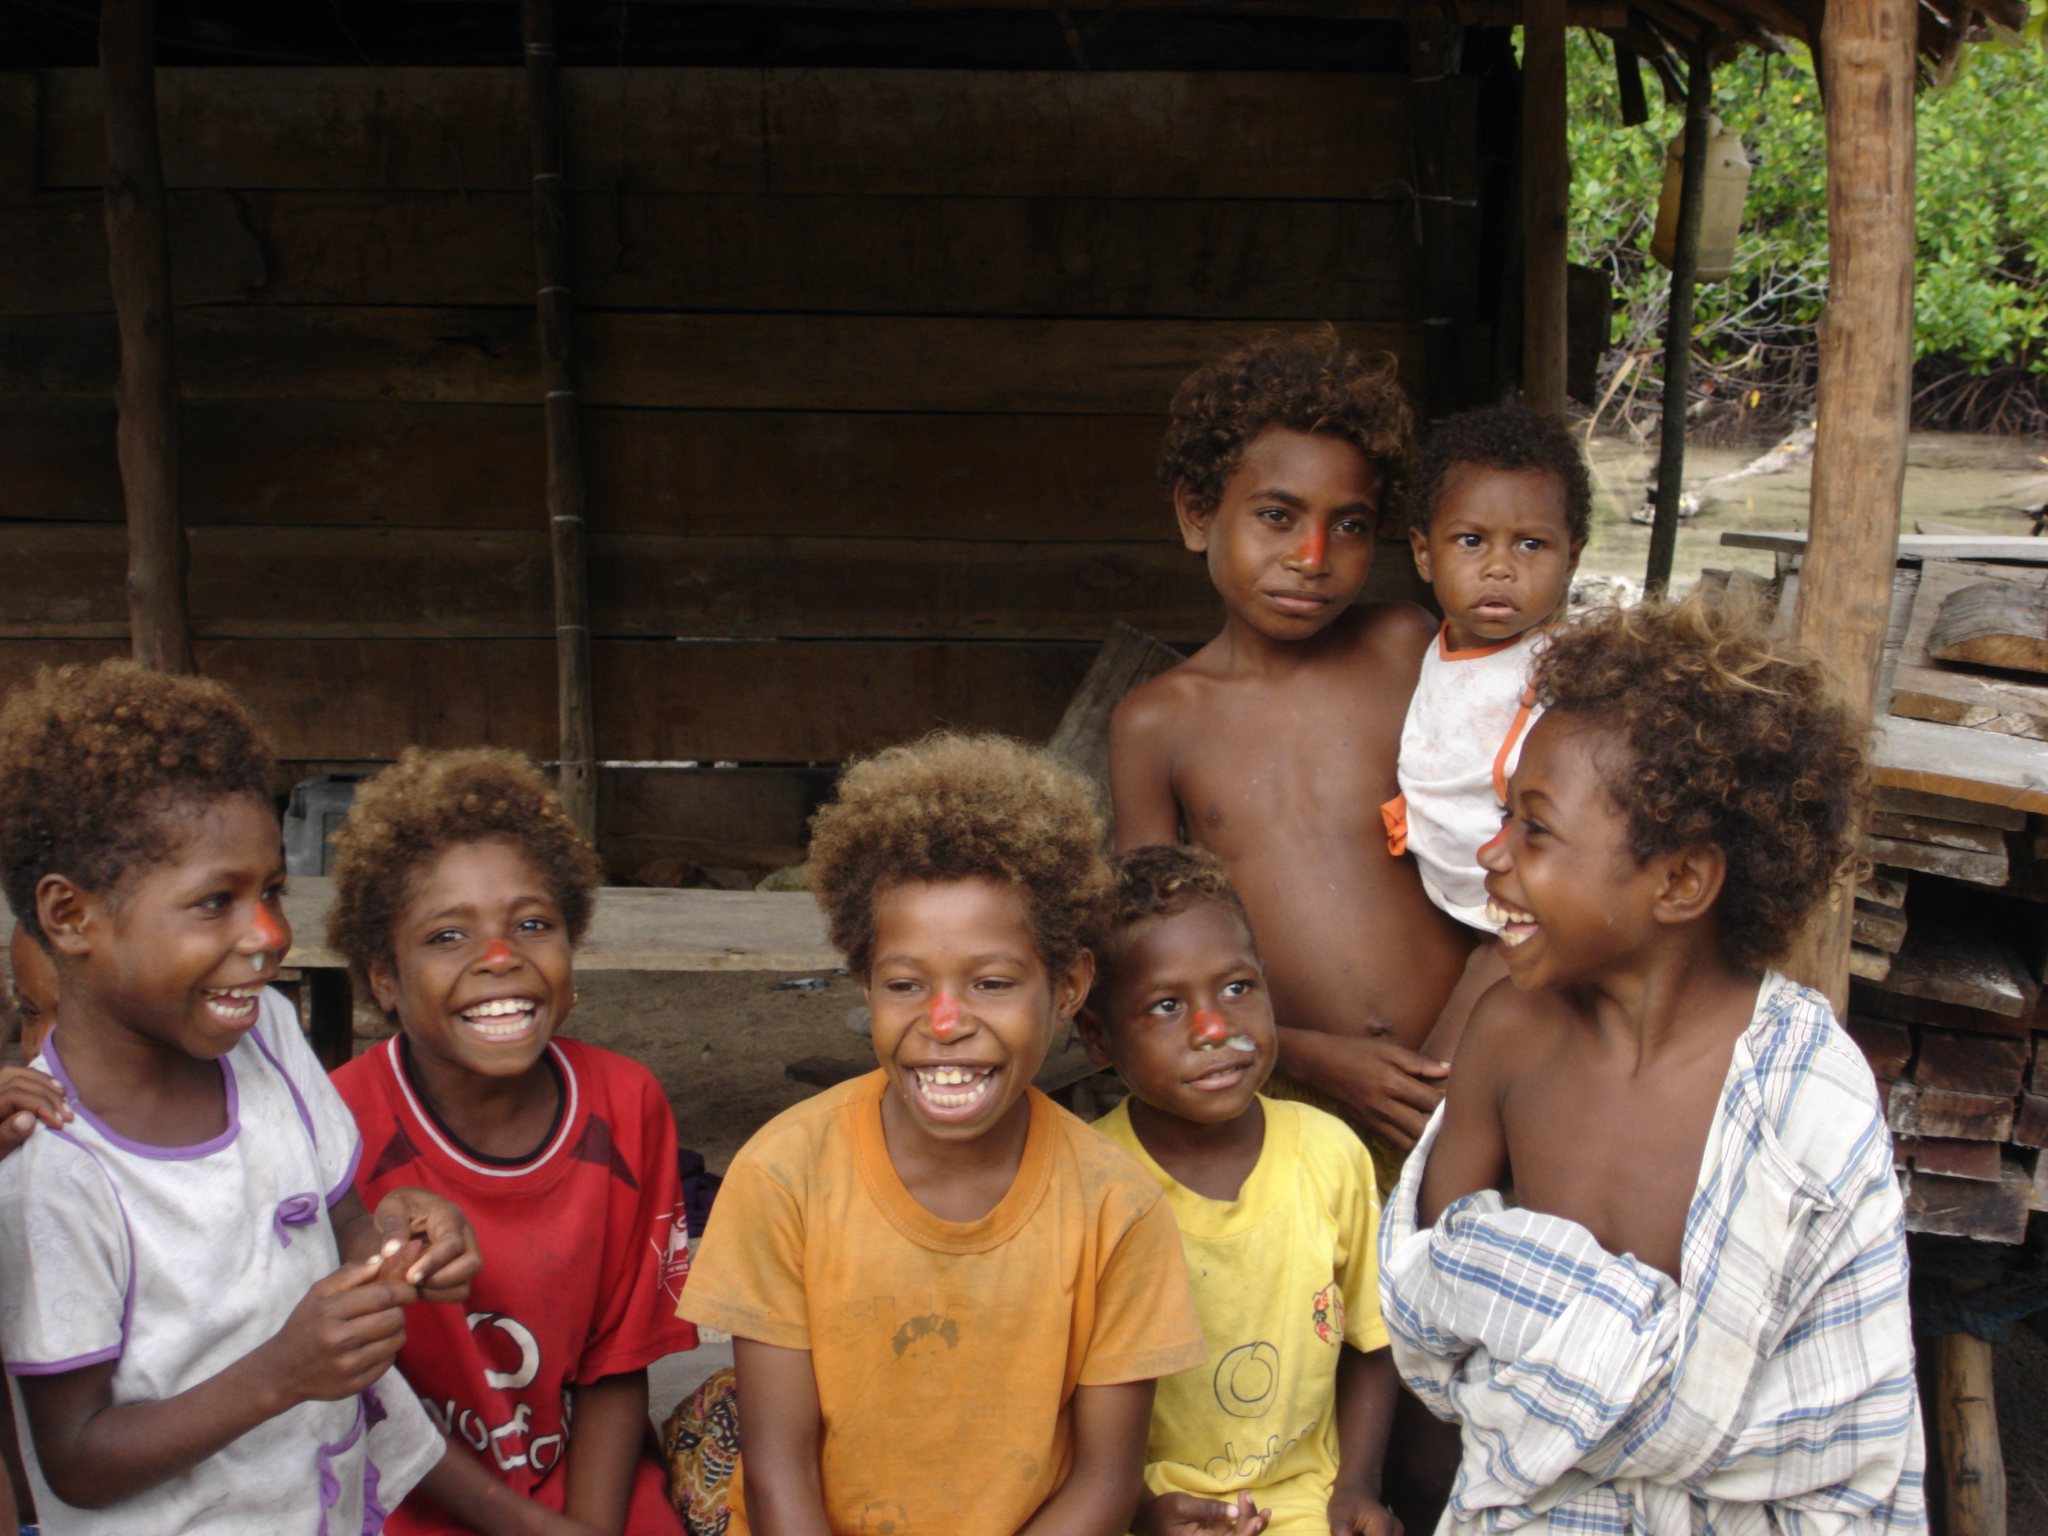 Children from a village in the Papua province of Indonesia. The village is involved in conservation activities related to the preservation of the red bird of paradise. Image credit: Daniel Miller